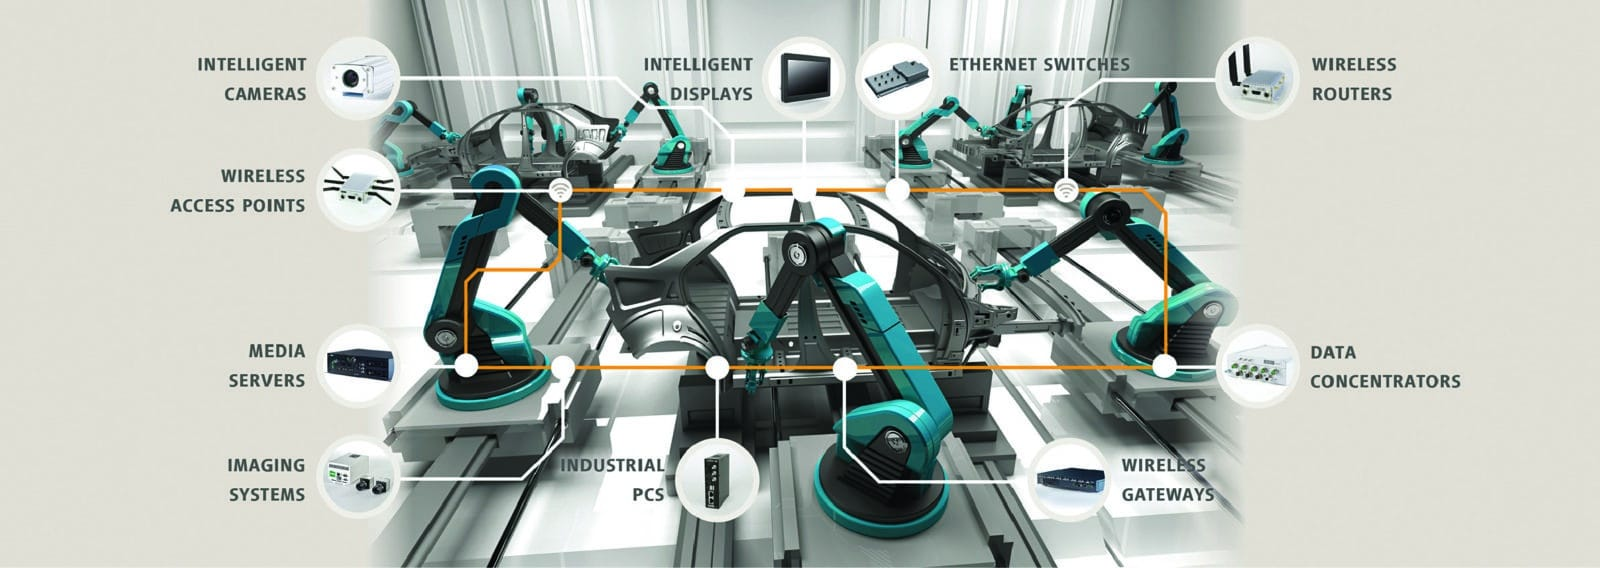 Industry 4.0 (Image courtesy: www.eltec.de)